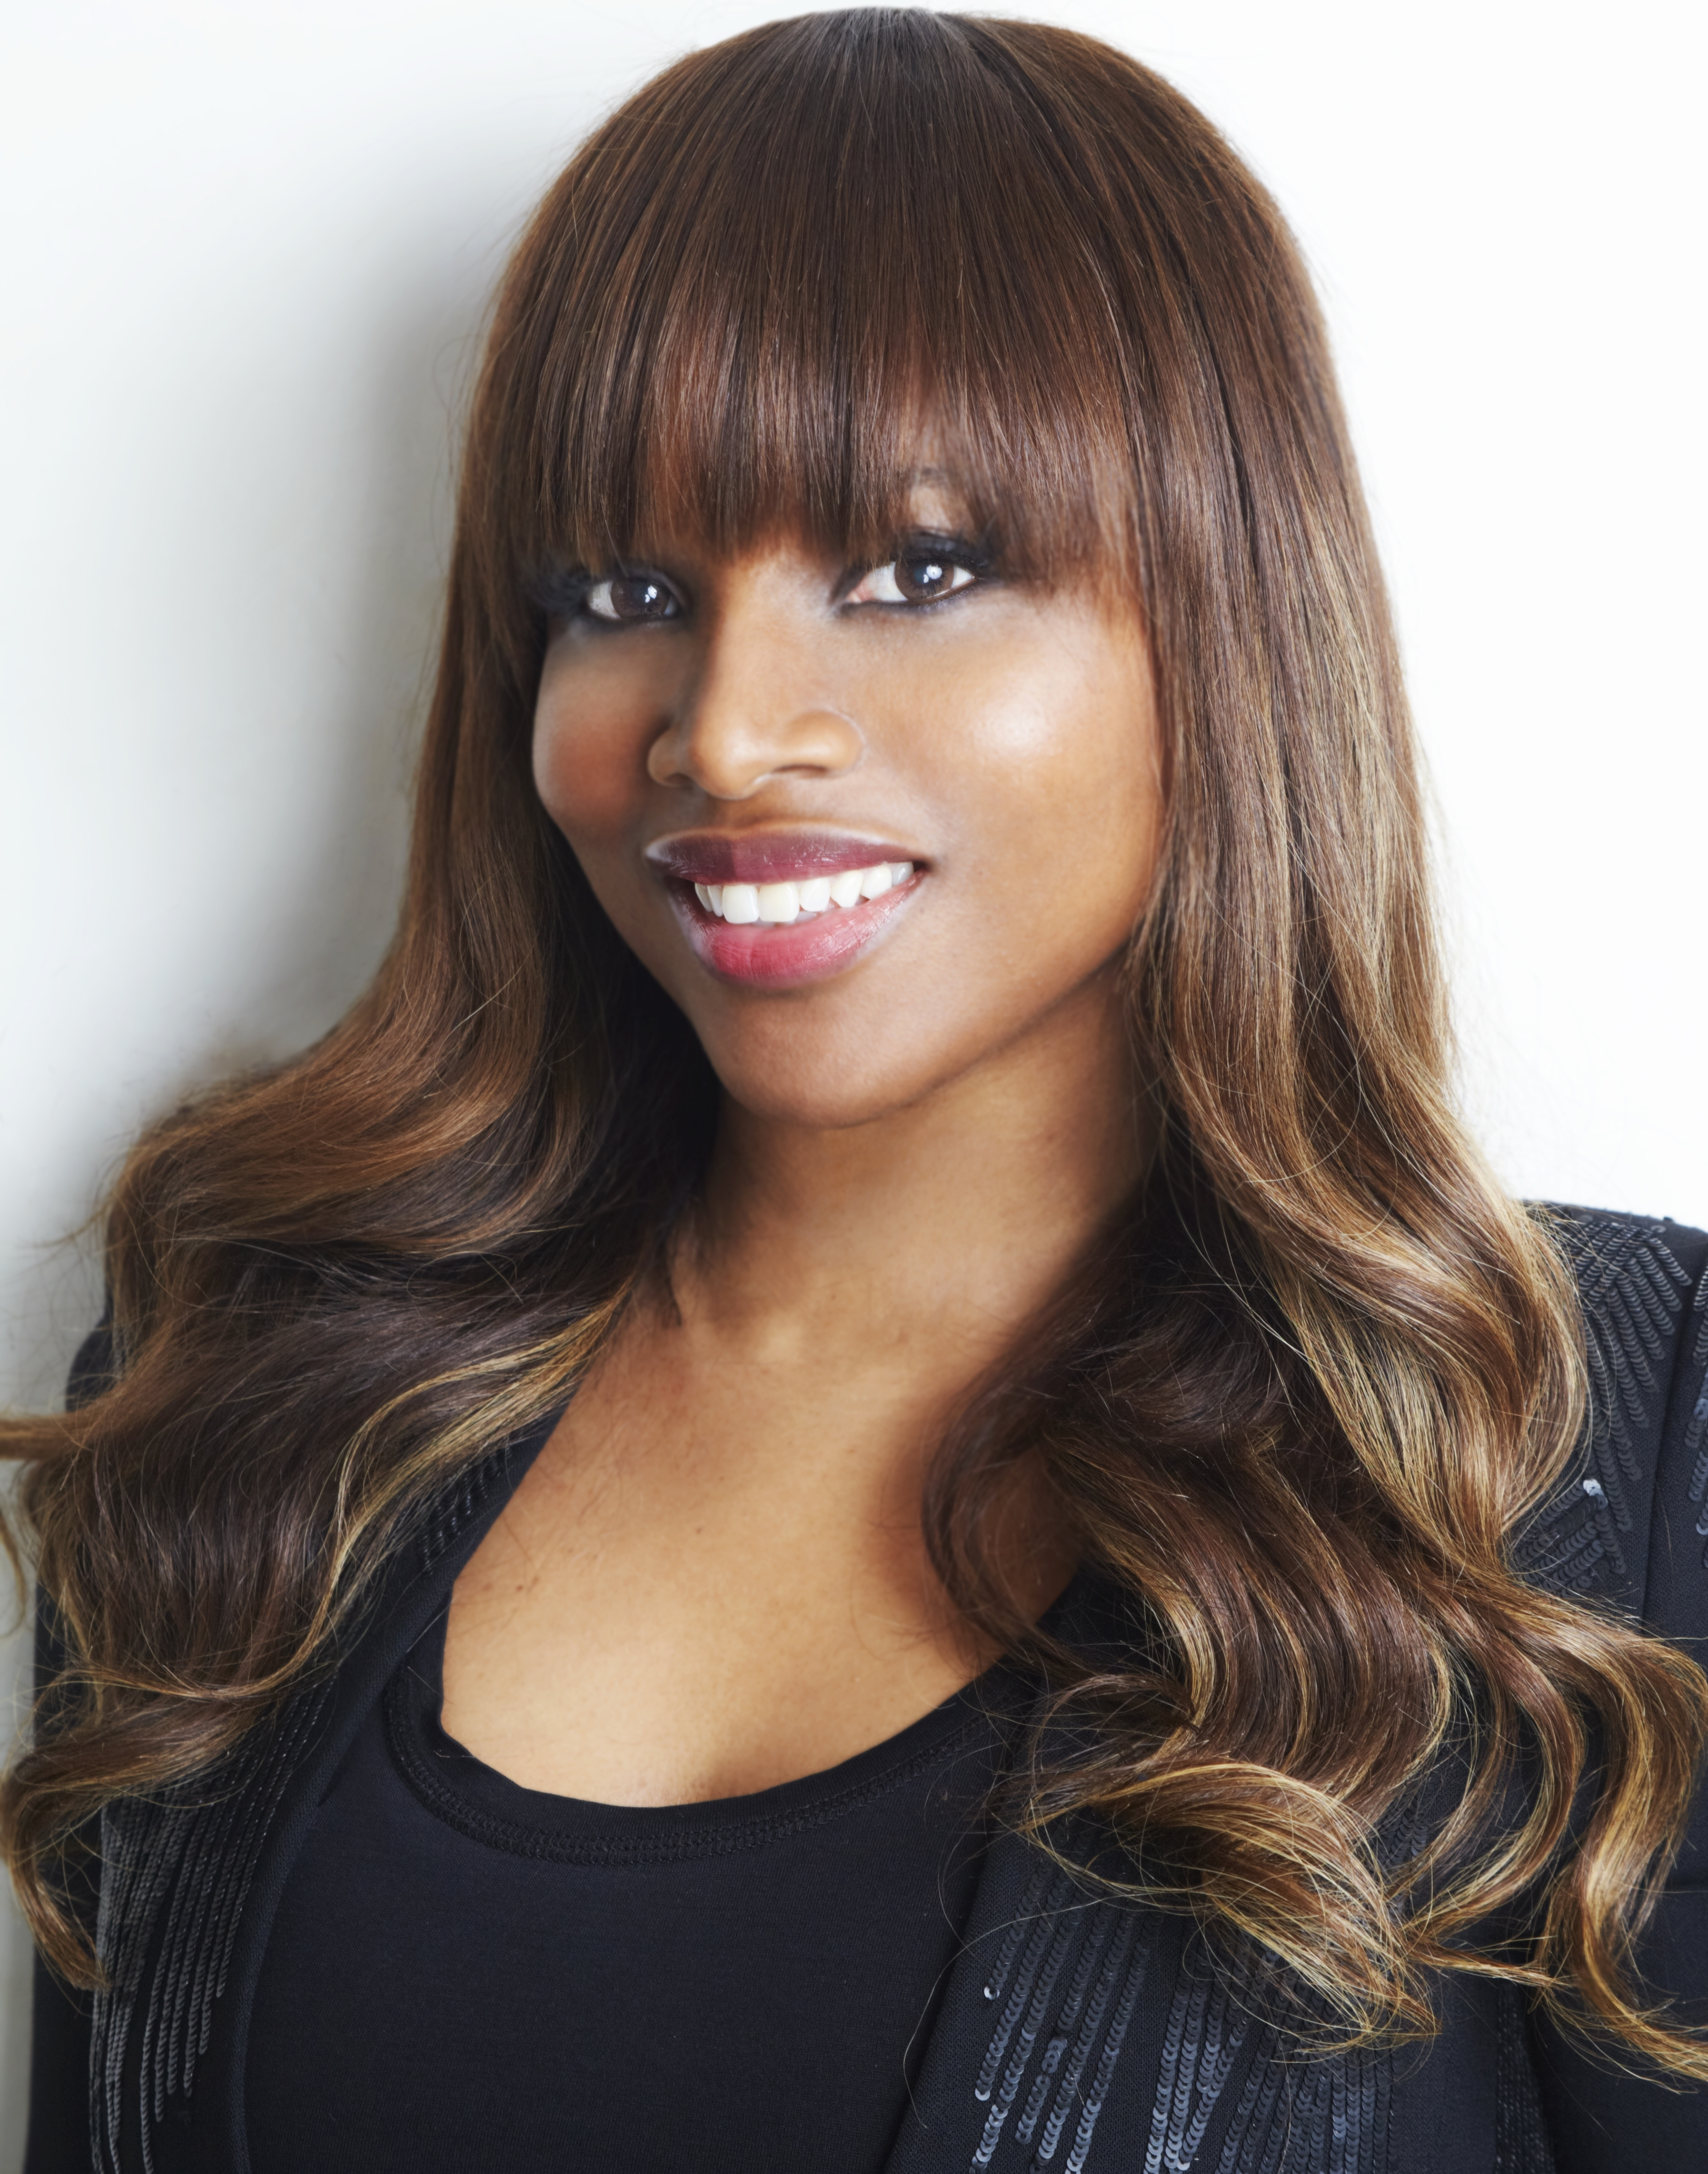 20 Great Ponytails With Bangs Inspiration Ideas – Amoy Pitters Intended For 2017 Minaj Pony Hairstyles With Arched Bangs (View 1 of 20)